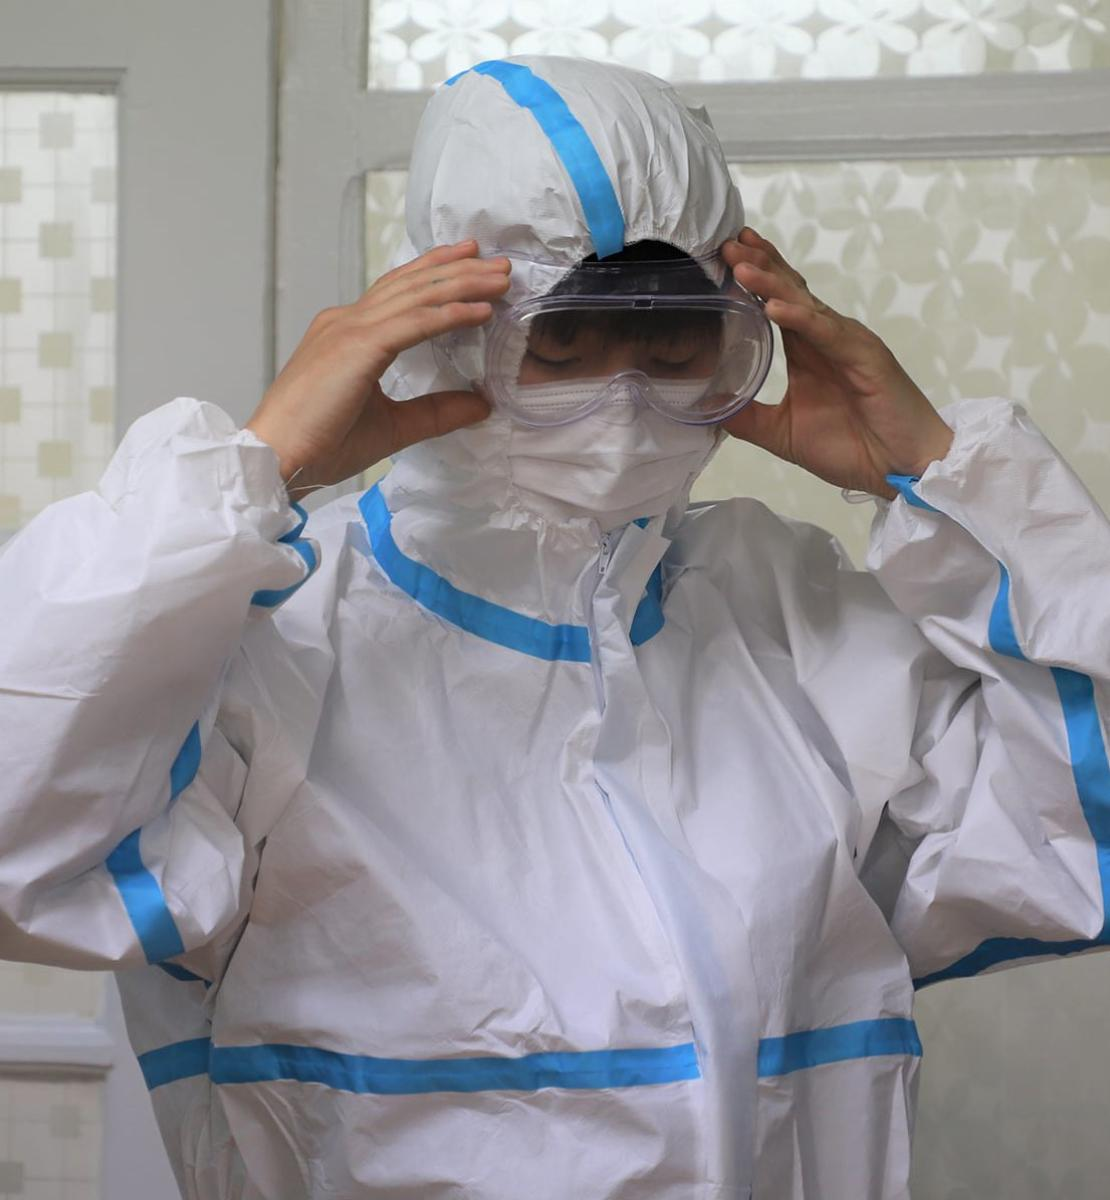 A healthcare worker tries on head-to-toe personal protective equipment.